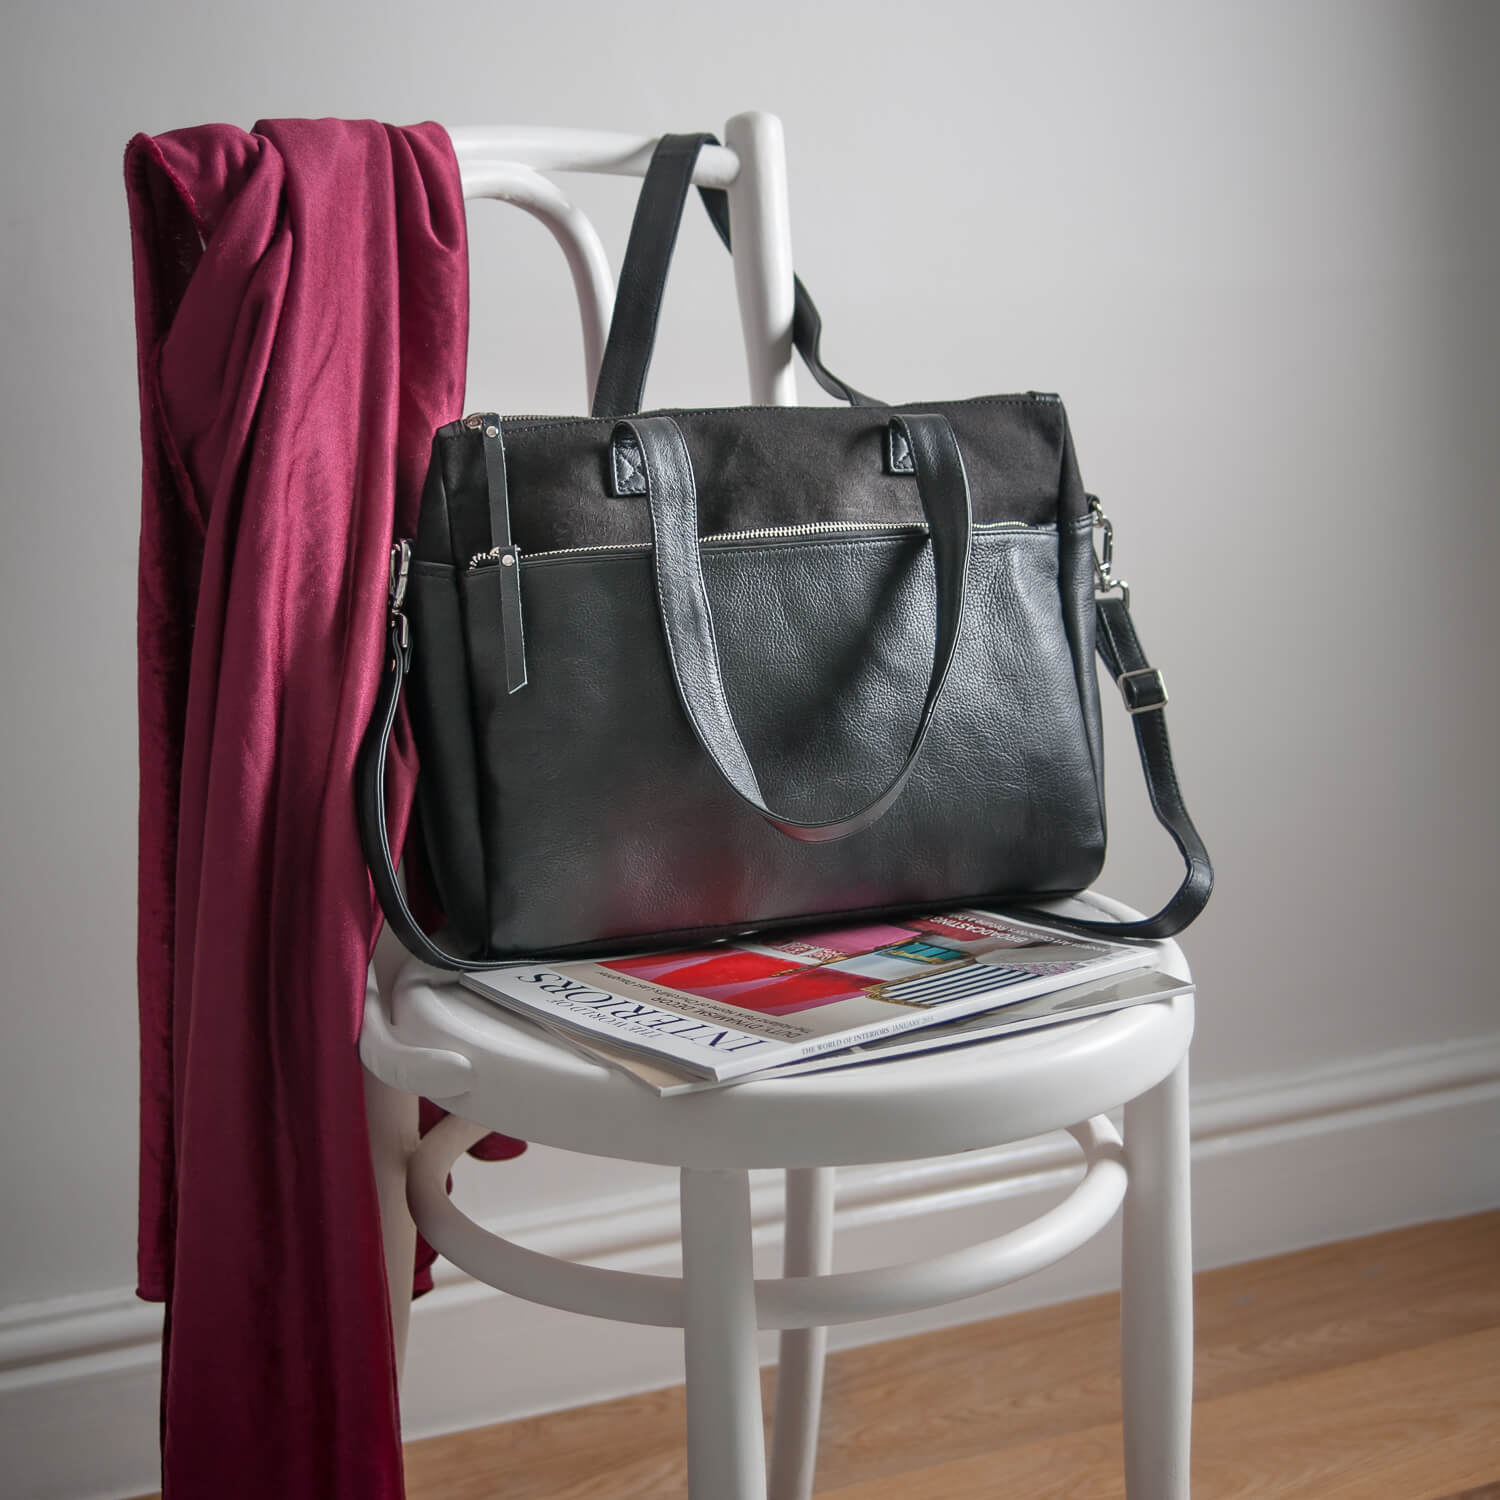 Hydestyle London ladies bag photographed simply with magazine on vintage chair